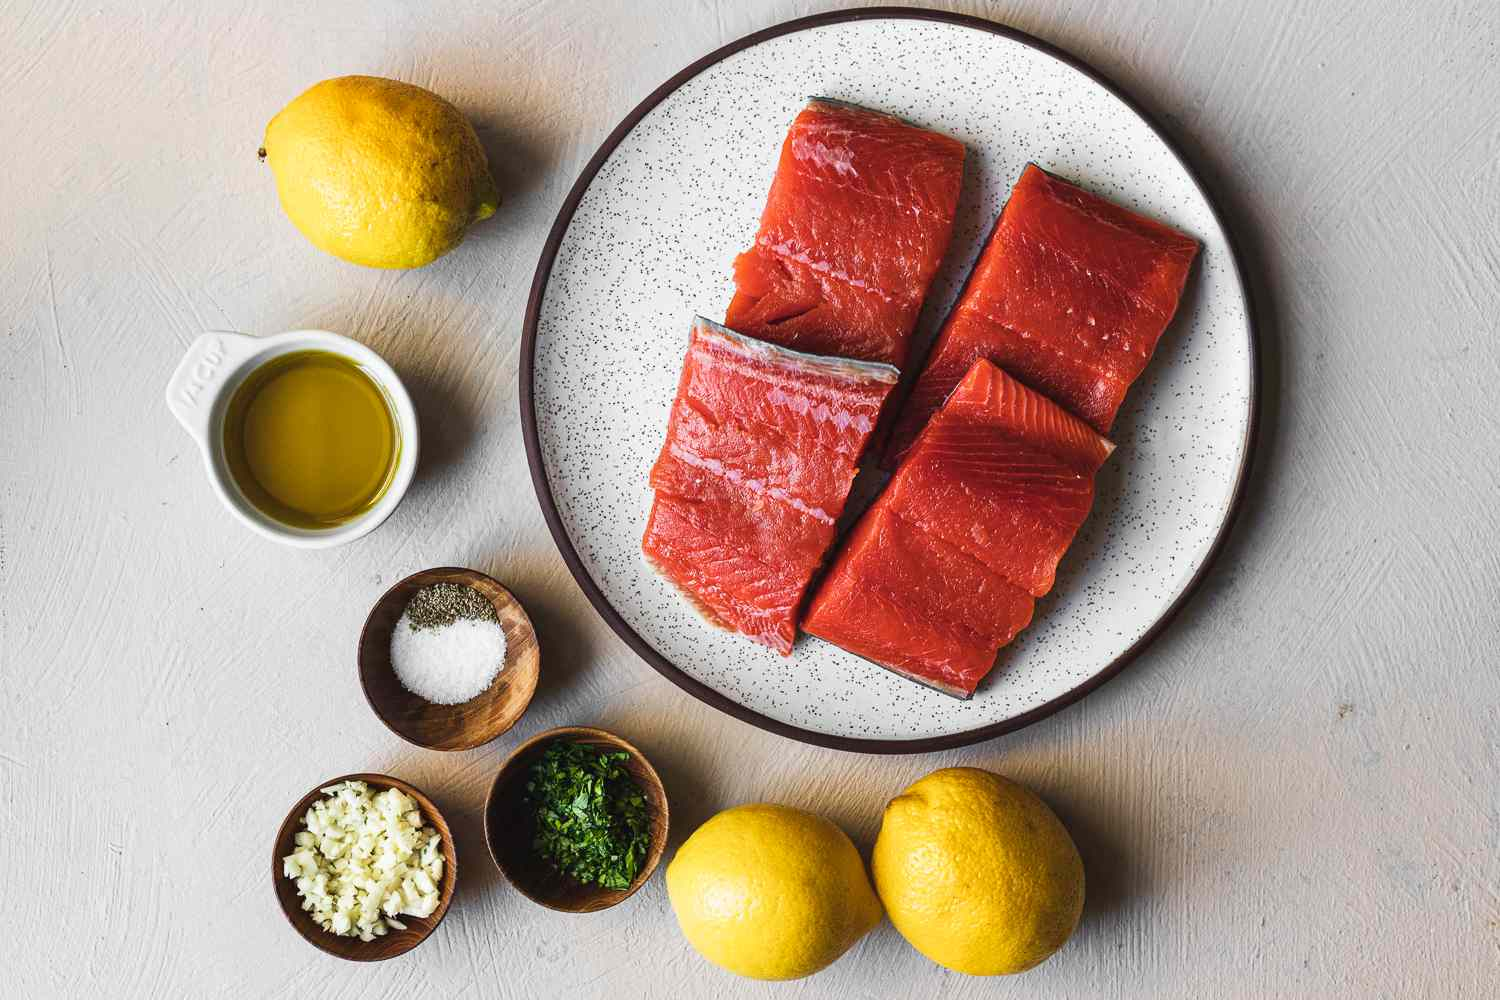 Ingredients for baked salmon with garlic